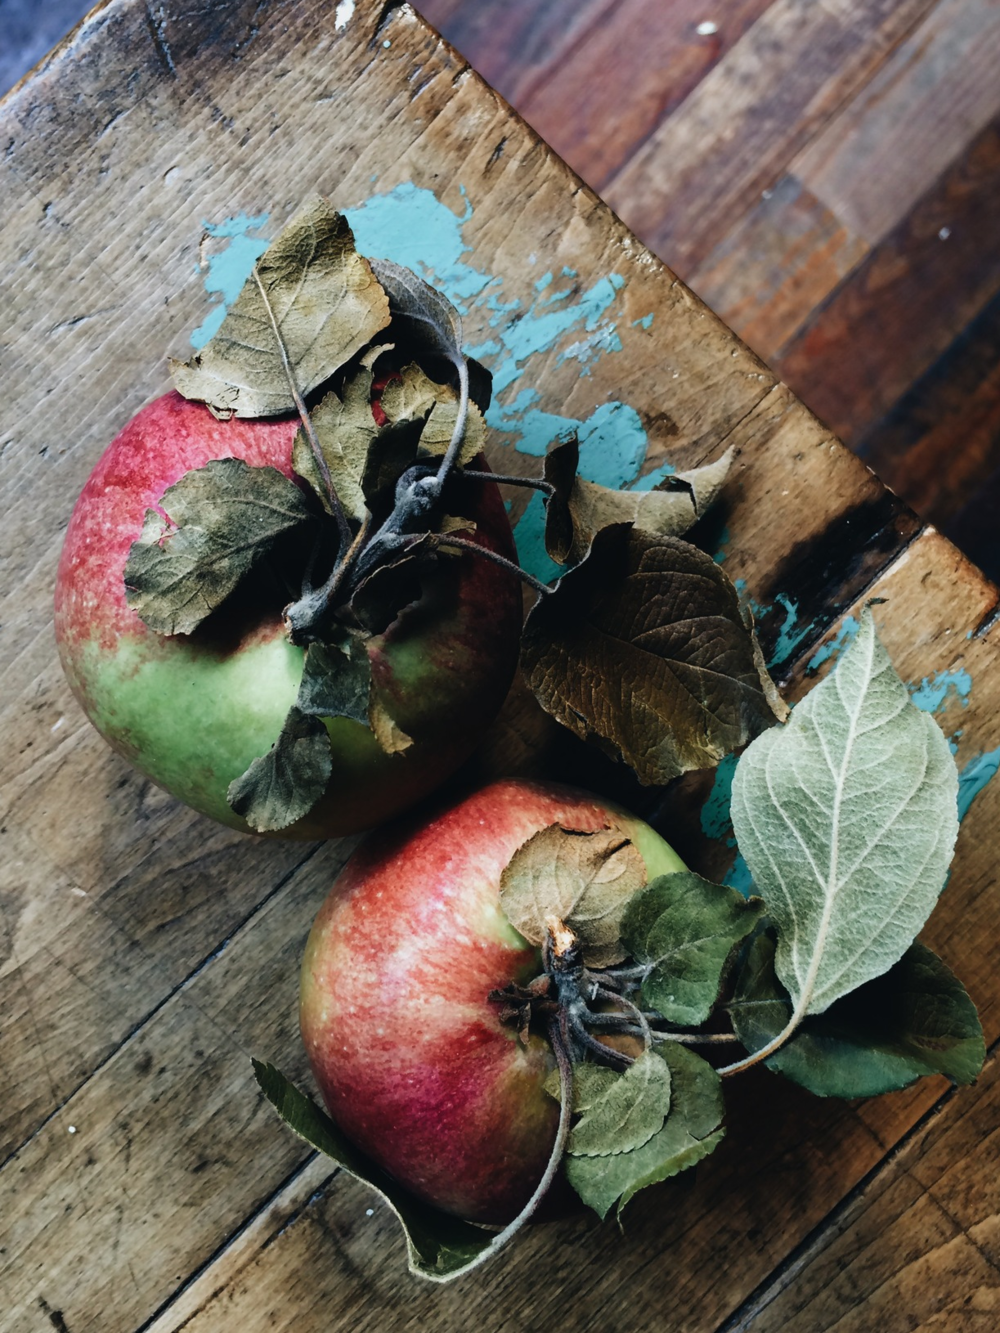 Local farm-fresh apples at Via Carota, where cherished downtown chefs Jody Williams and Rita Sodi cook deeply appealing Italian food, honoring their local markets and farms from one season to the next.